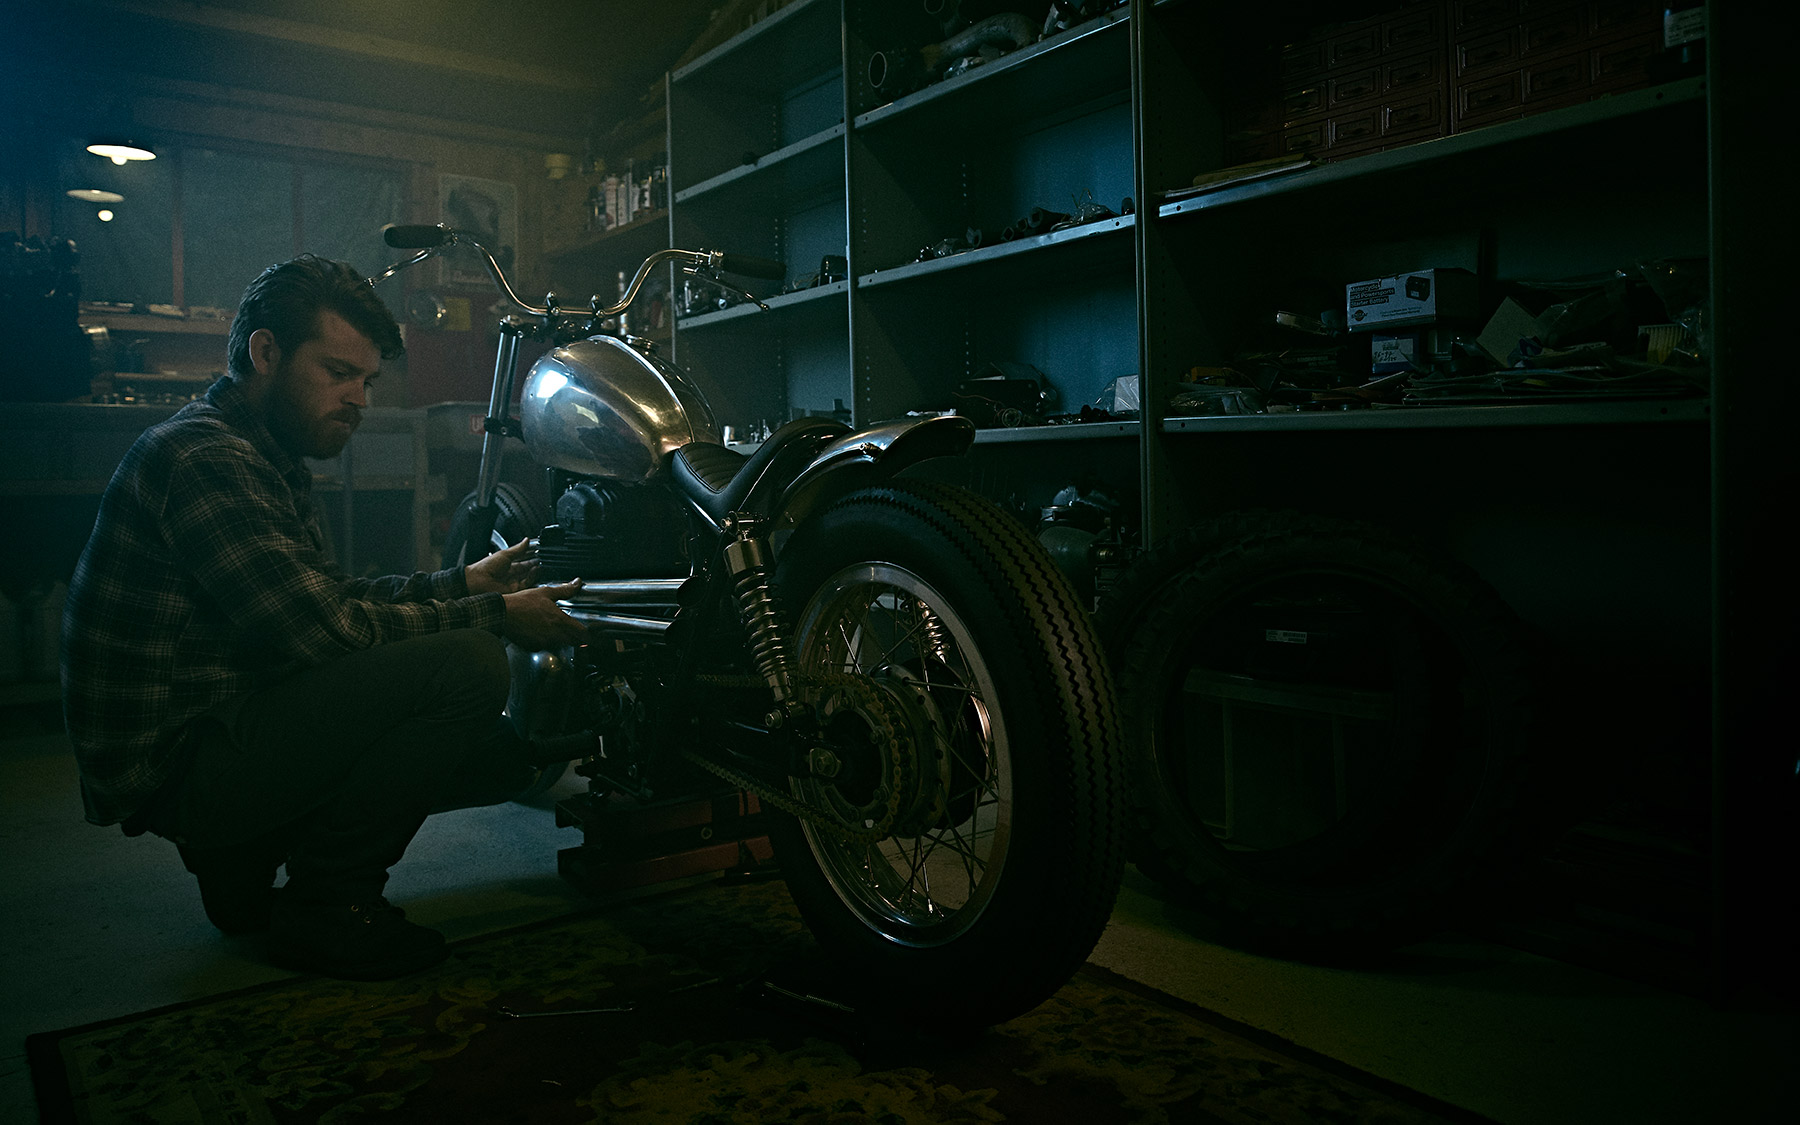 Fitting an exhaust at Inglorious Motorcycles